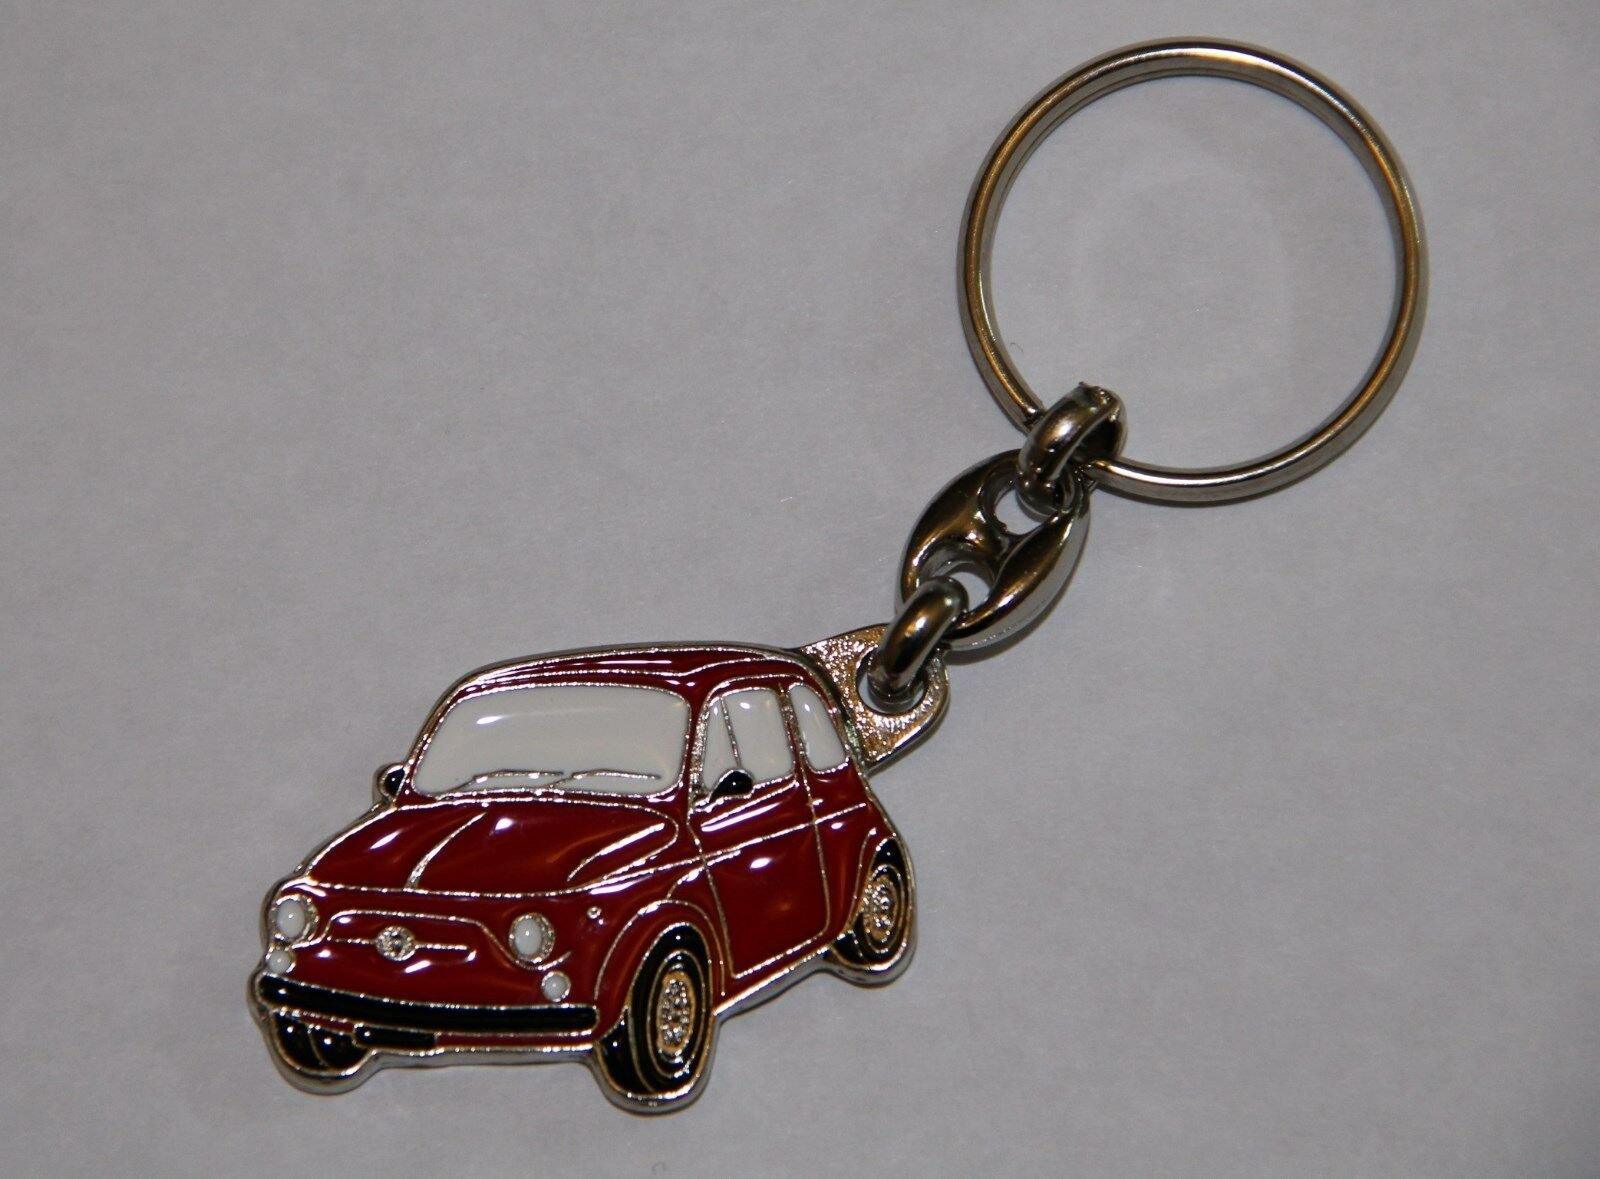 CLASSIC FIAT 500 METAL KEYRING RED COLOUR - GOOD QUALITY - MORE COLOURS IN STOCK